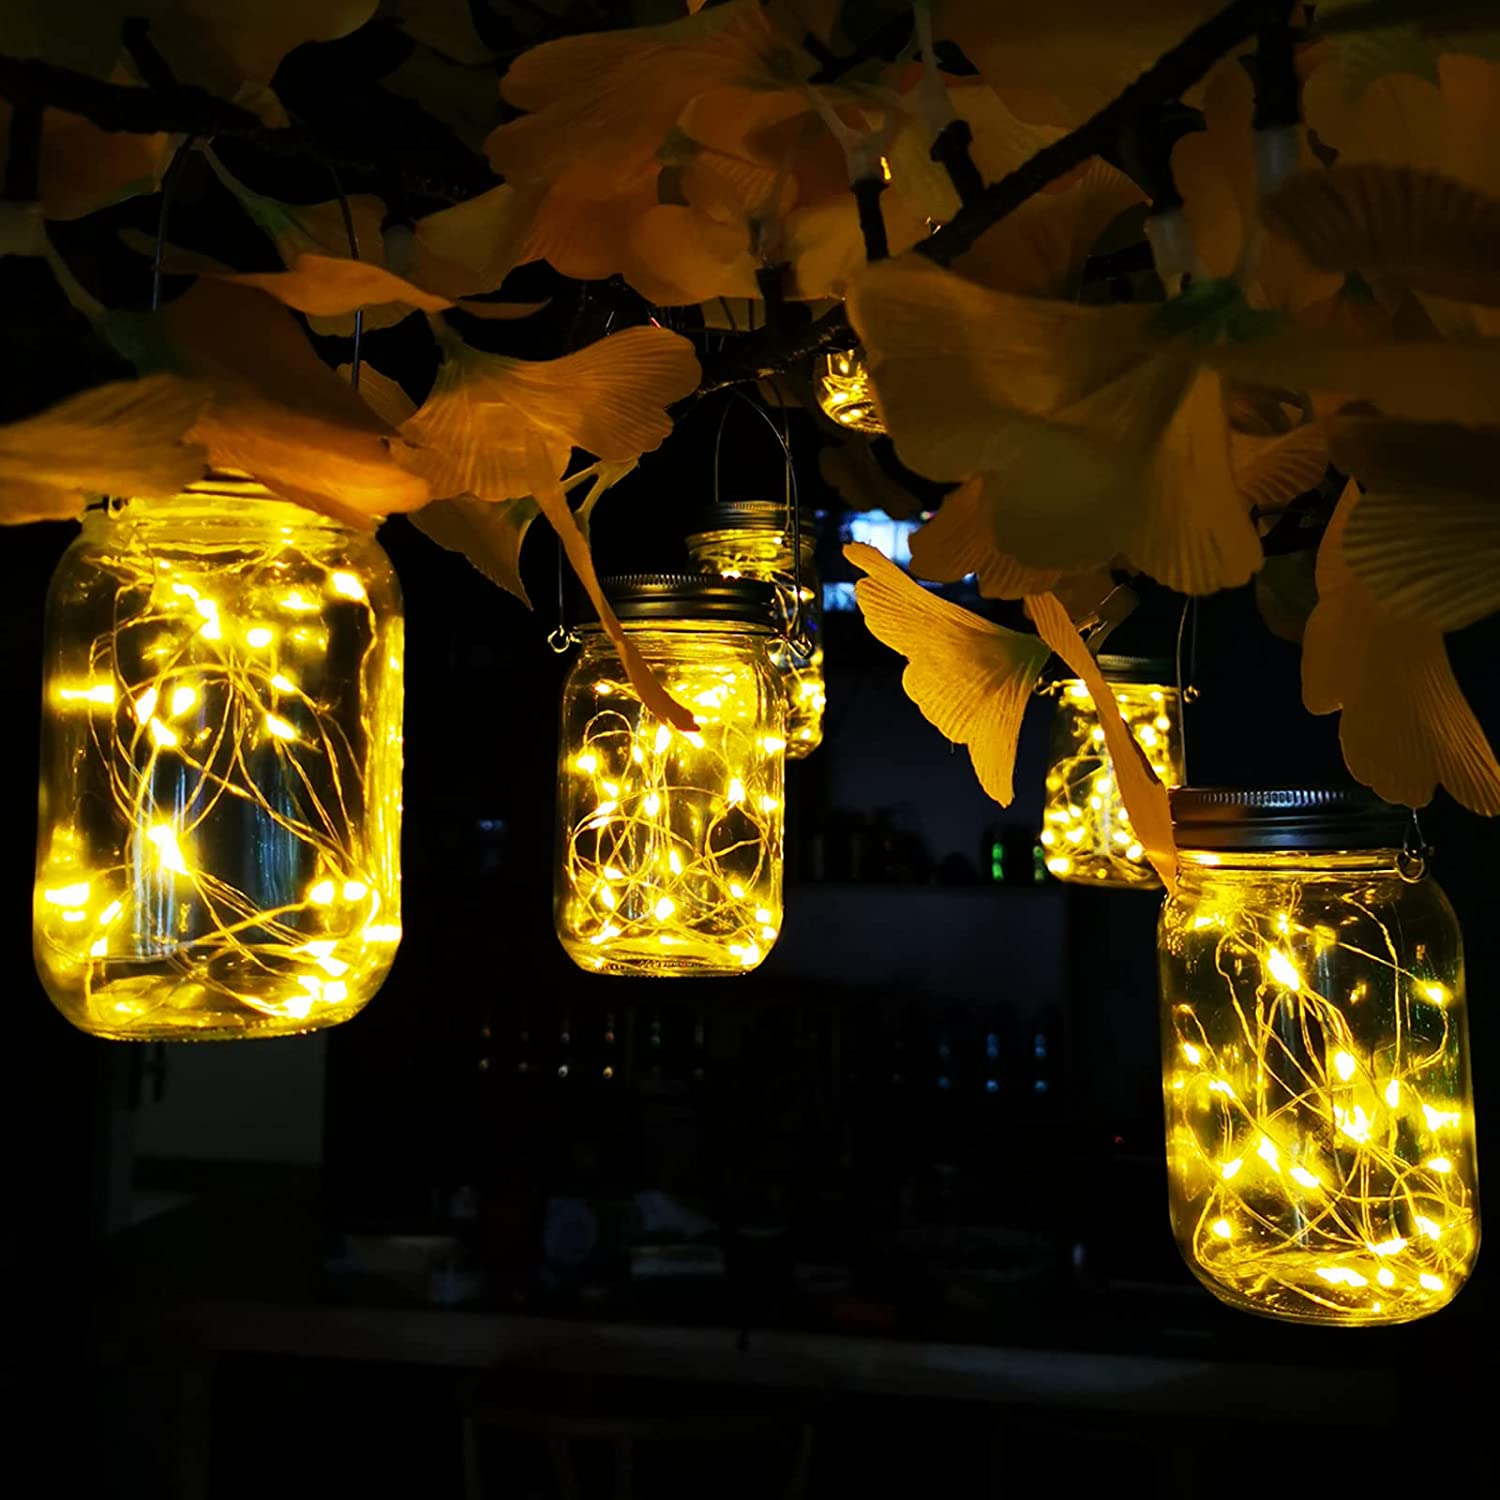 Aipatal Solar Mason Jar Lights 25 LED 6 Pack Hanging Solar Lights Outdoor Waterproof Fairy Jar Solar Lanterns for Patio Garden Hangers and Jars Included- Warm White